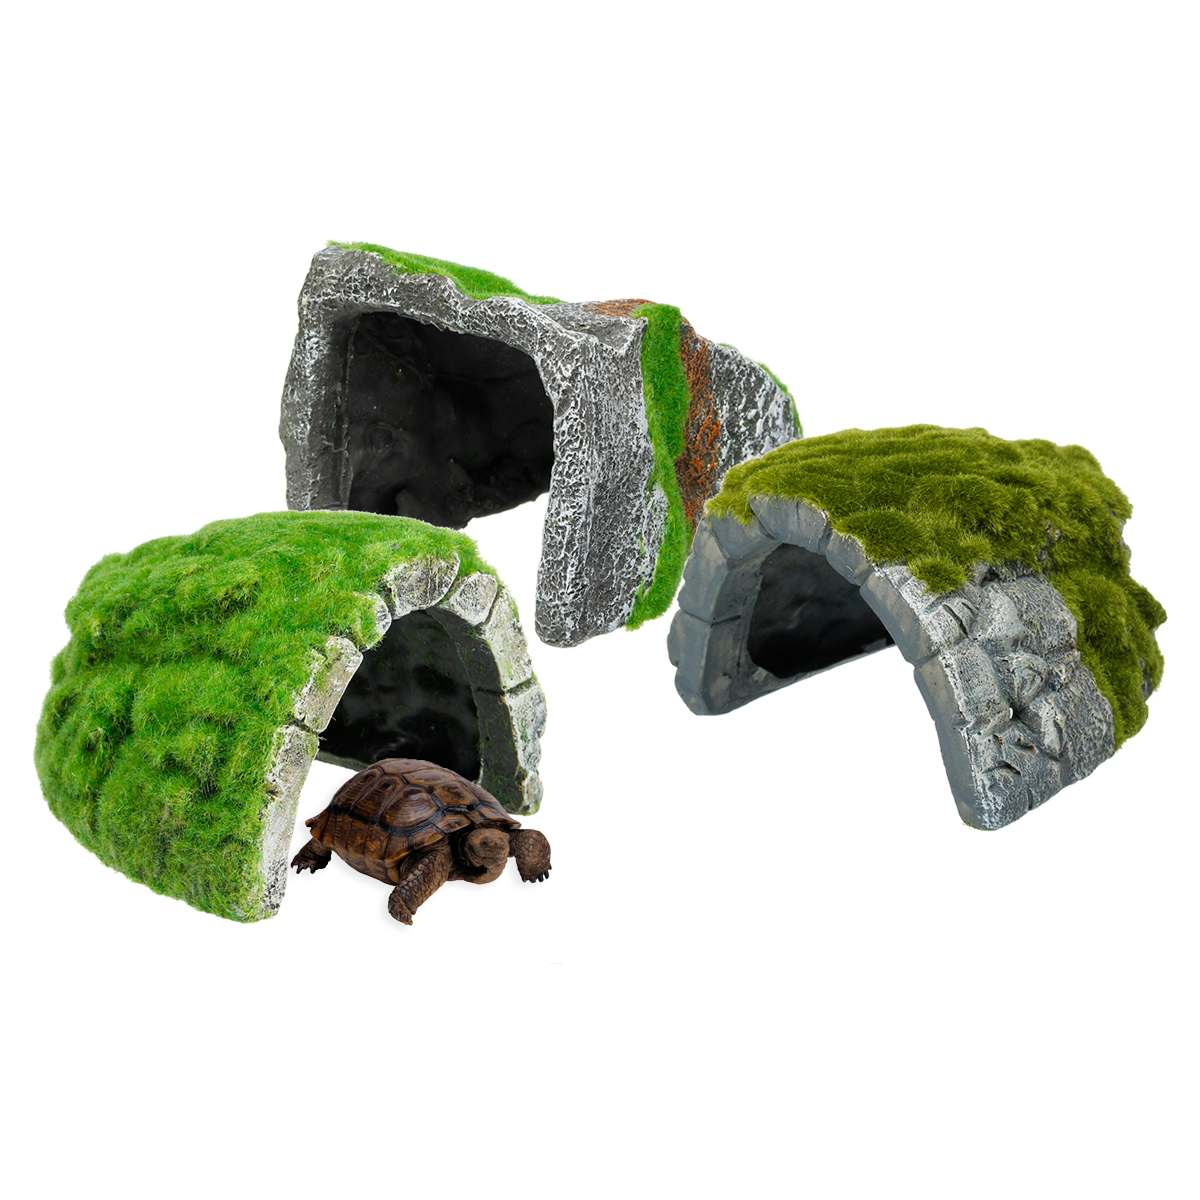 Resin Reptiles Habitat Hiding Cave Fish Turtle Tank Basking Decoration Ornament Tortoise Terrace Lizard Scorpion Hideout House